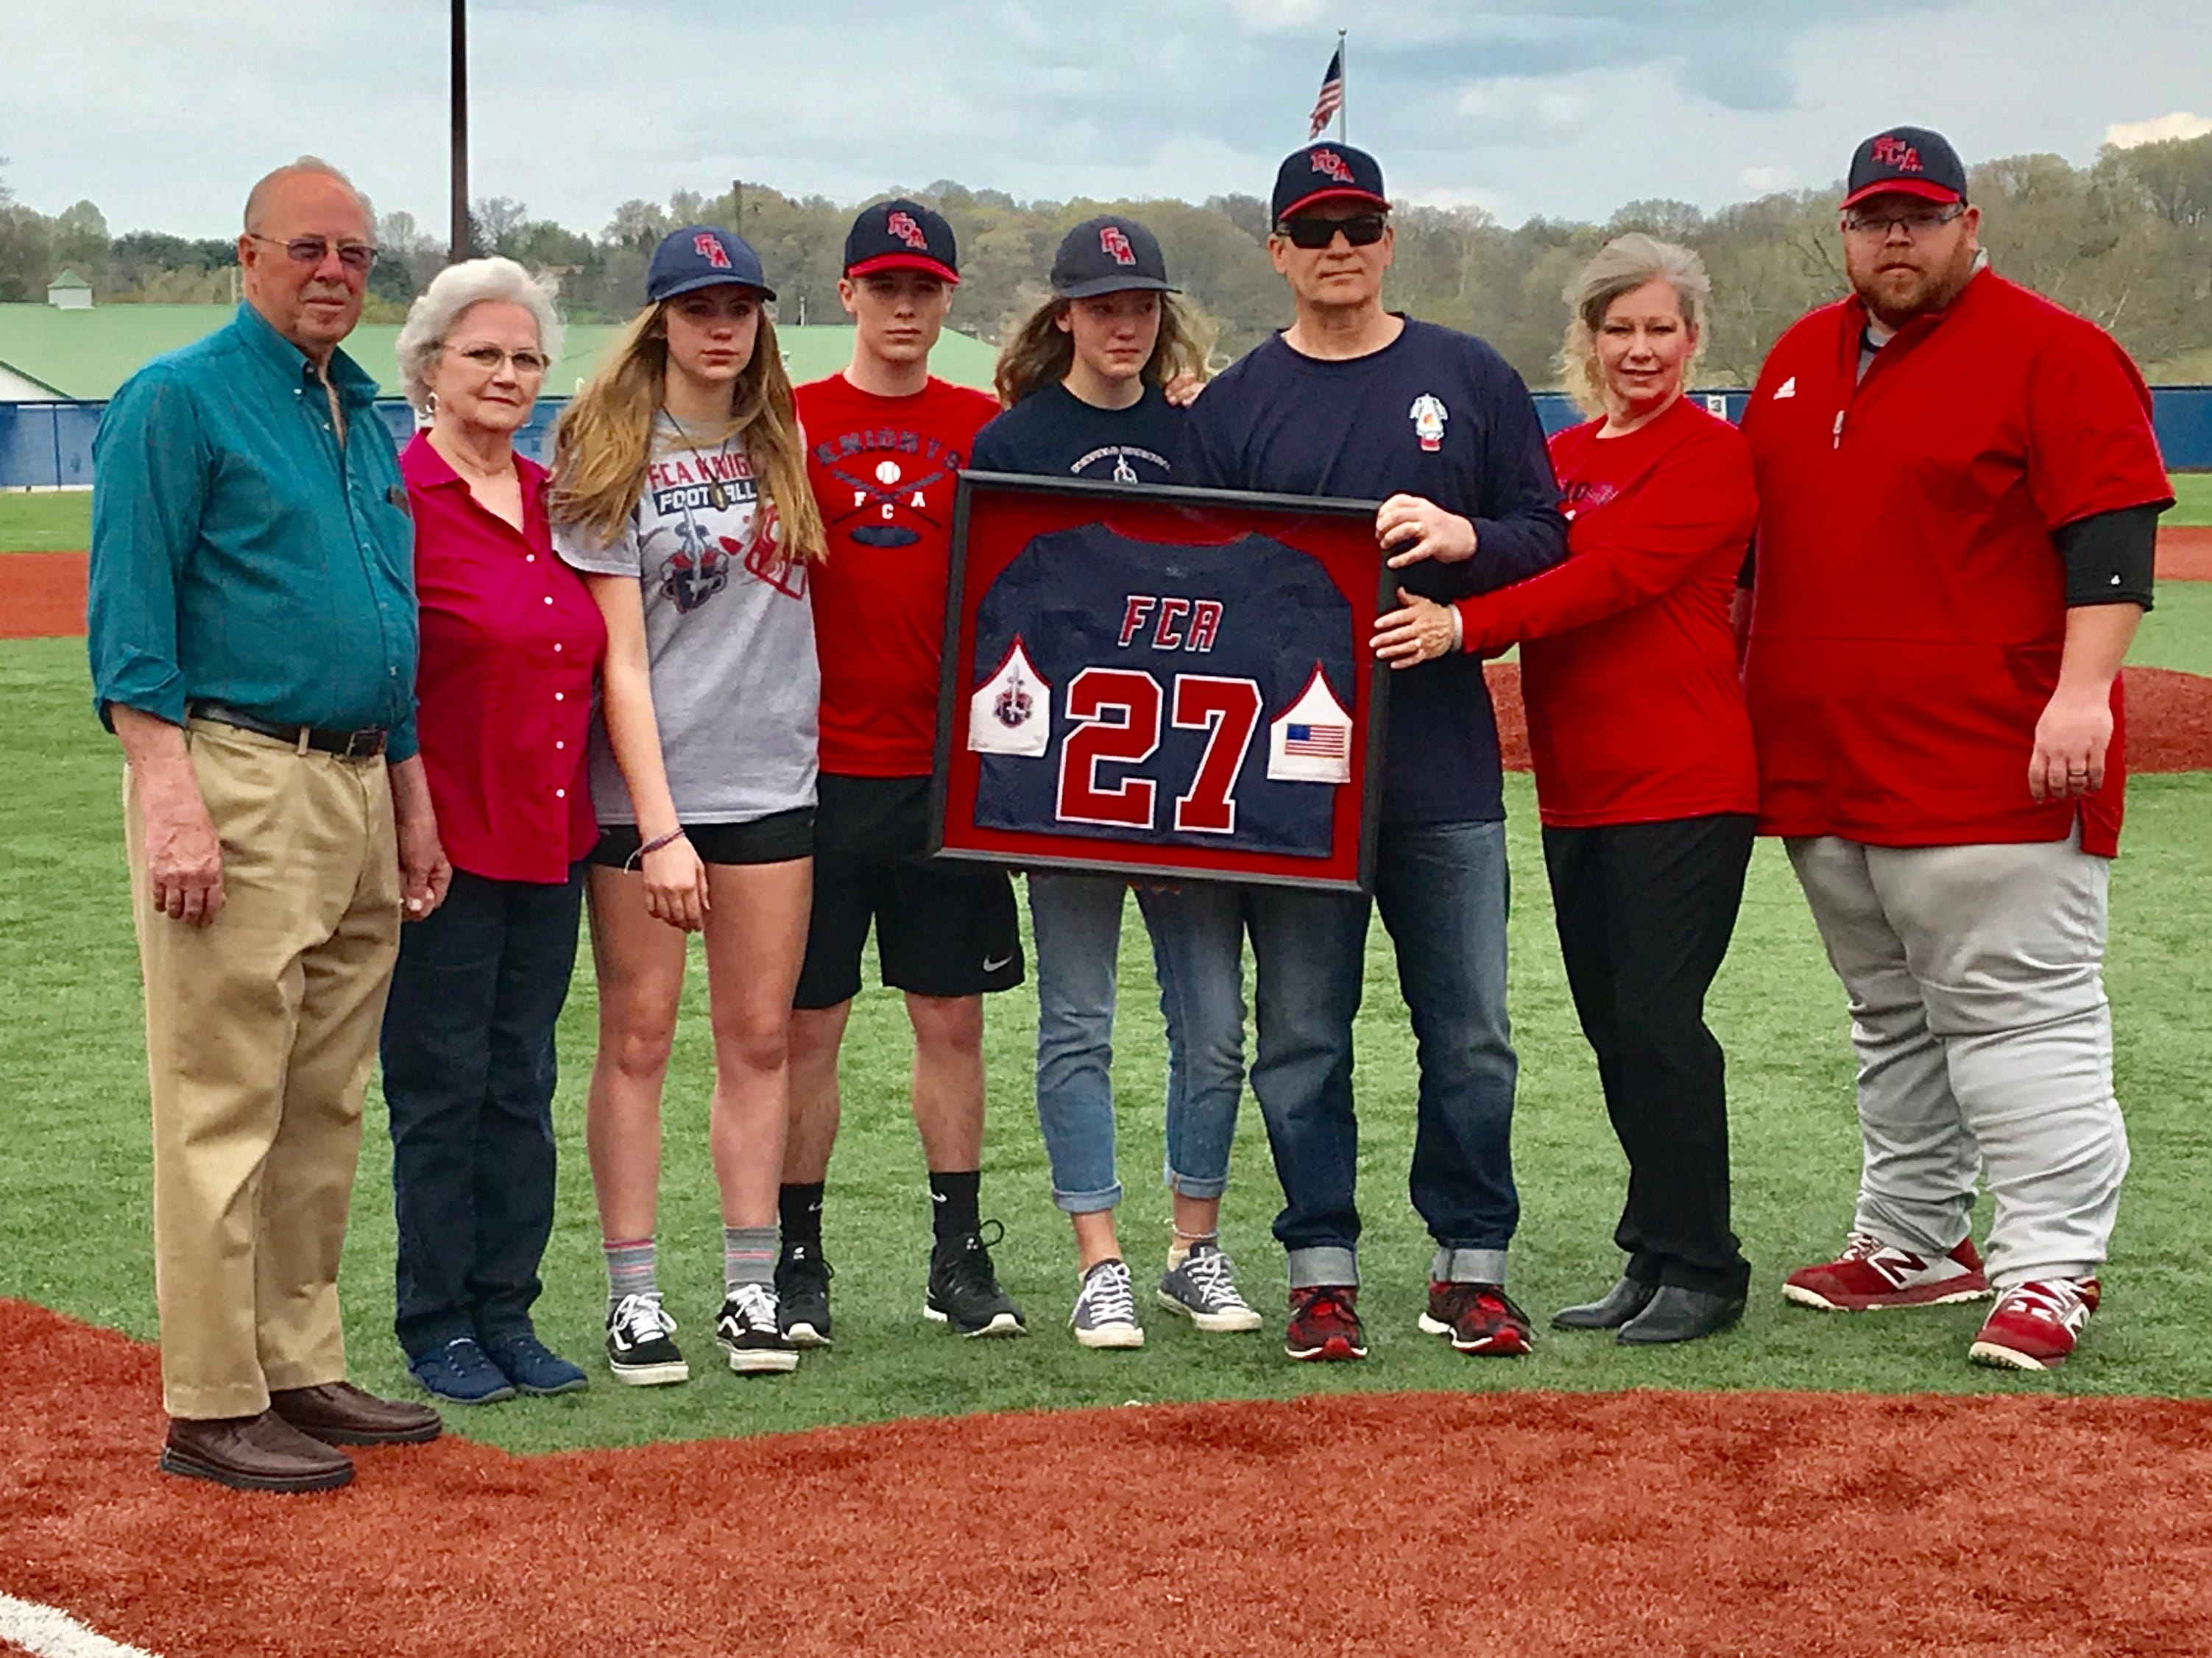 Fairfield Christian Academy graduate Jaakko Naayers, who passed away in January at the age of 21, had his baseball jersey retired Thursday. Receiving his jersey were members of his family, from left to right: Grandparents, Jim and Barb Schmelzer, sister, Janaya, brother, Asa, sister, Natalie, parents, Jeff and Charleen and FCA baseball coach Josh Baker.